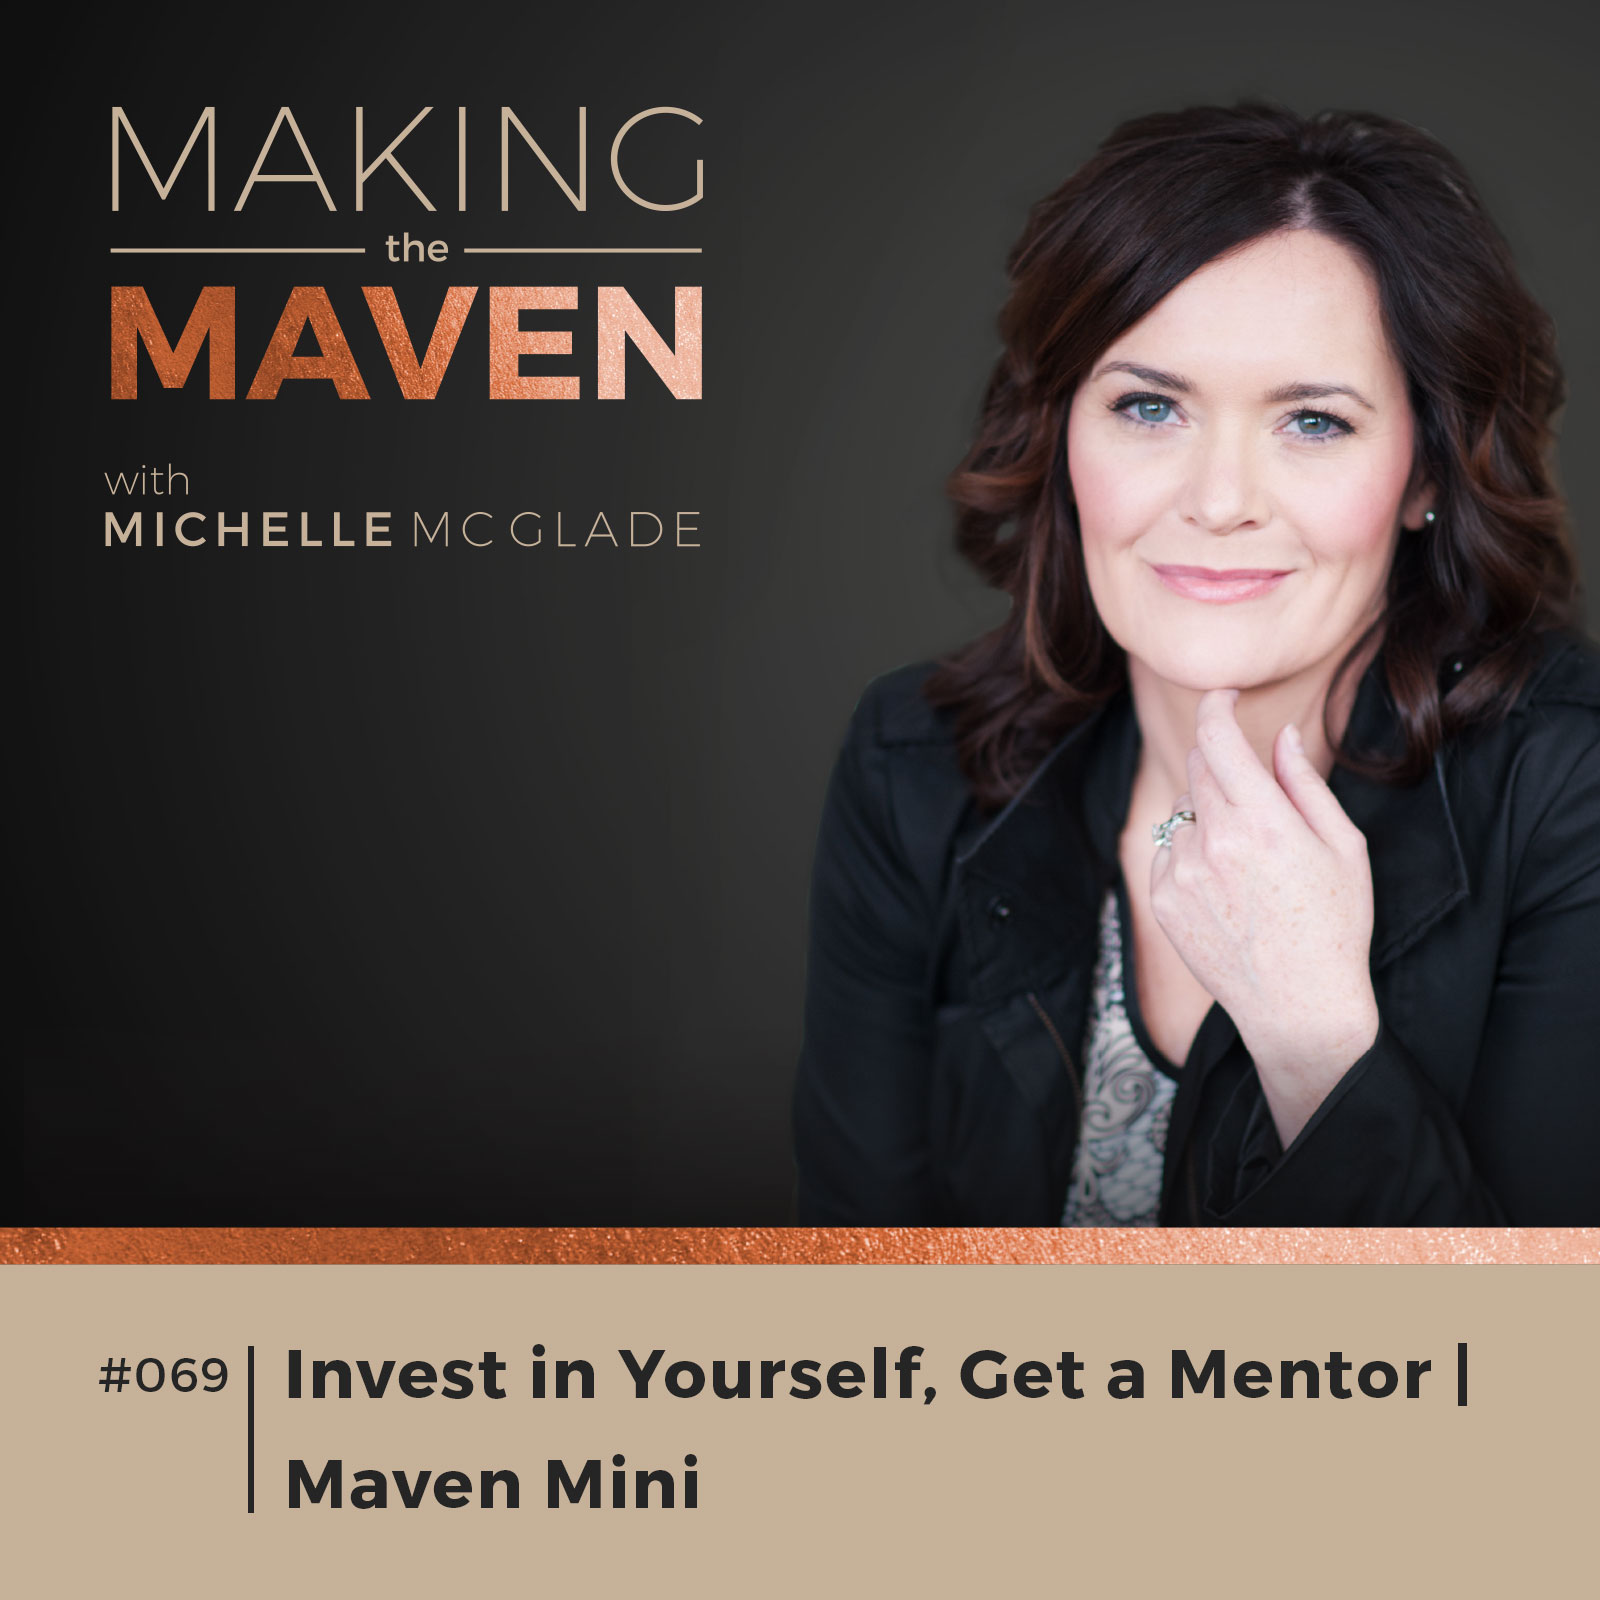 invest-in-yourself-get-a-mentor